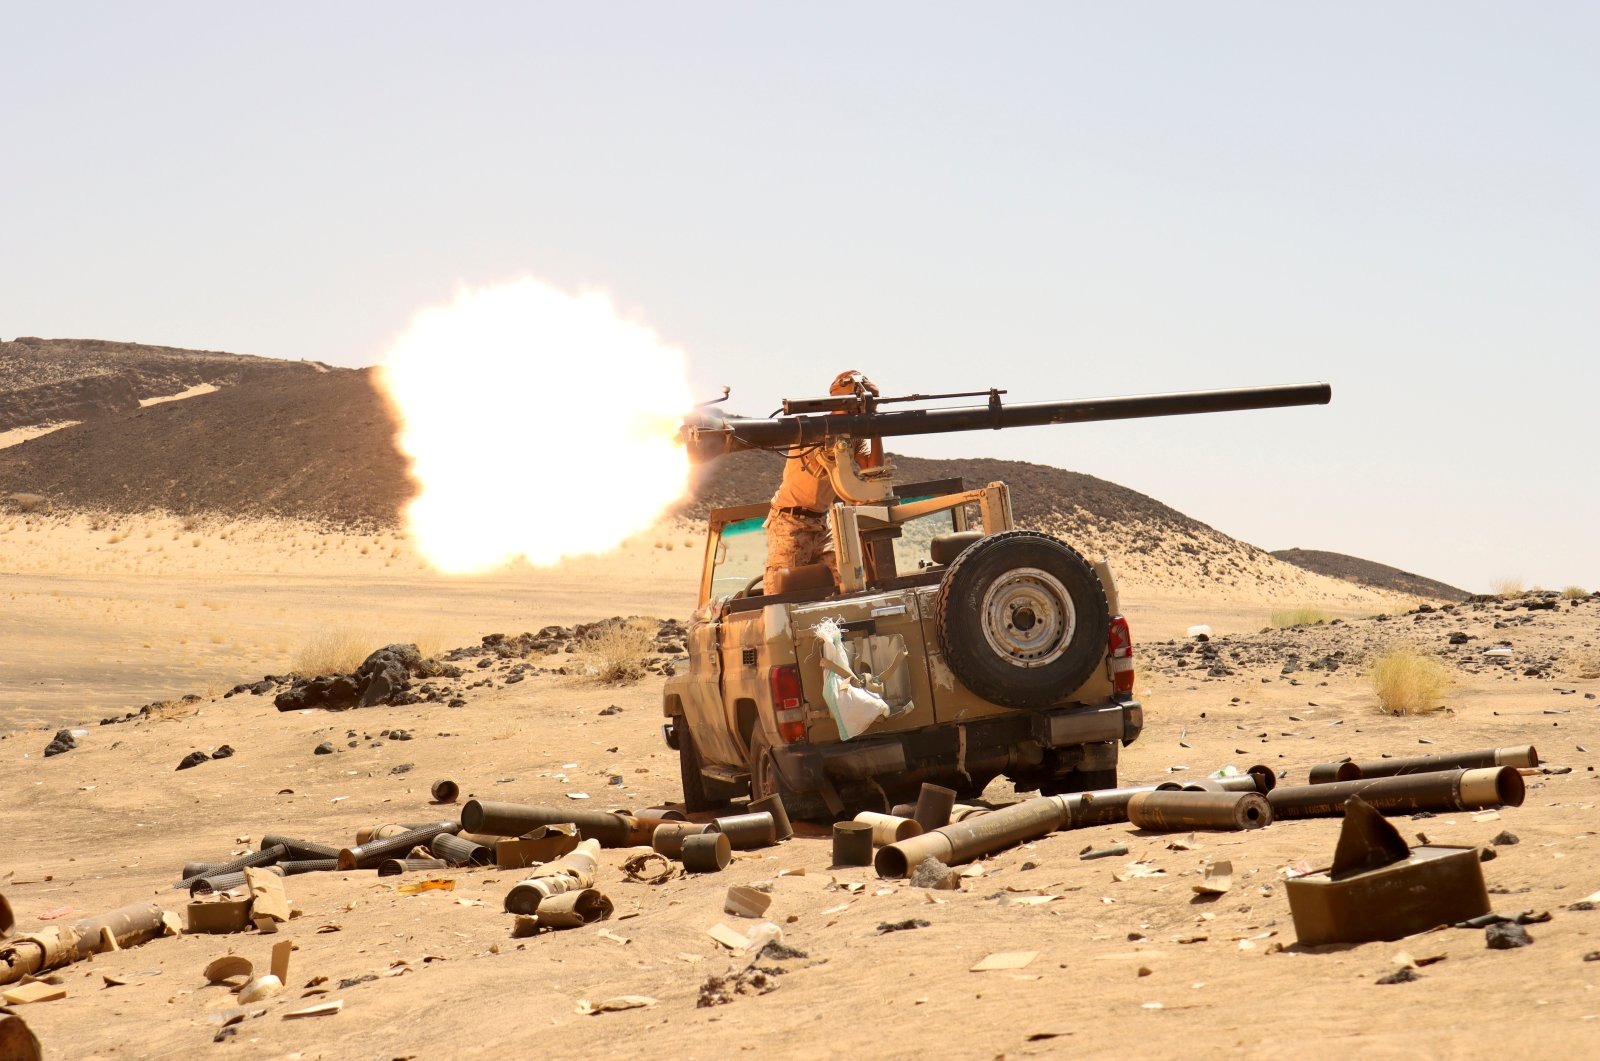 A Yemeni government fighter fires a vehicle-mounted weapon at a front line position during fighting against Houthi fighters in Marib, Yemen, March 9, 2021. (Reuters Photo)